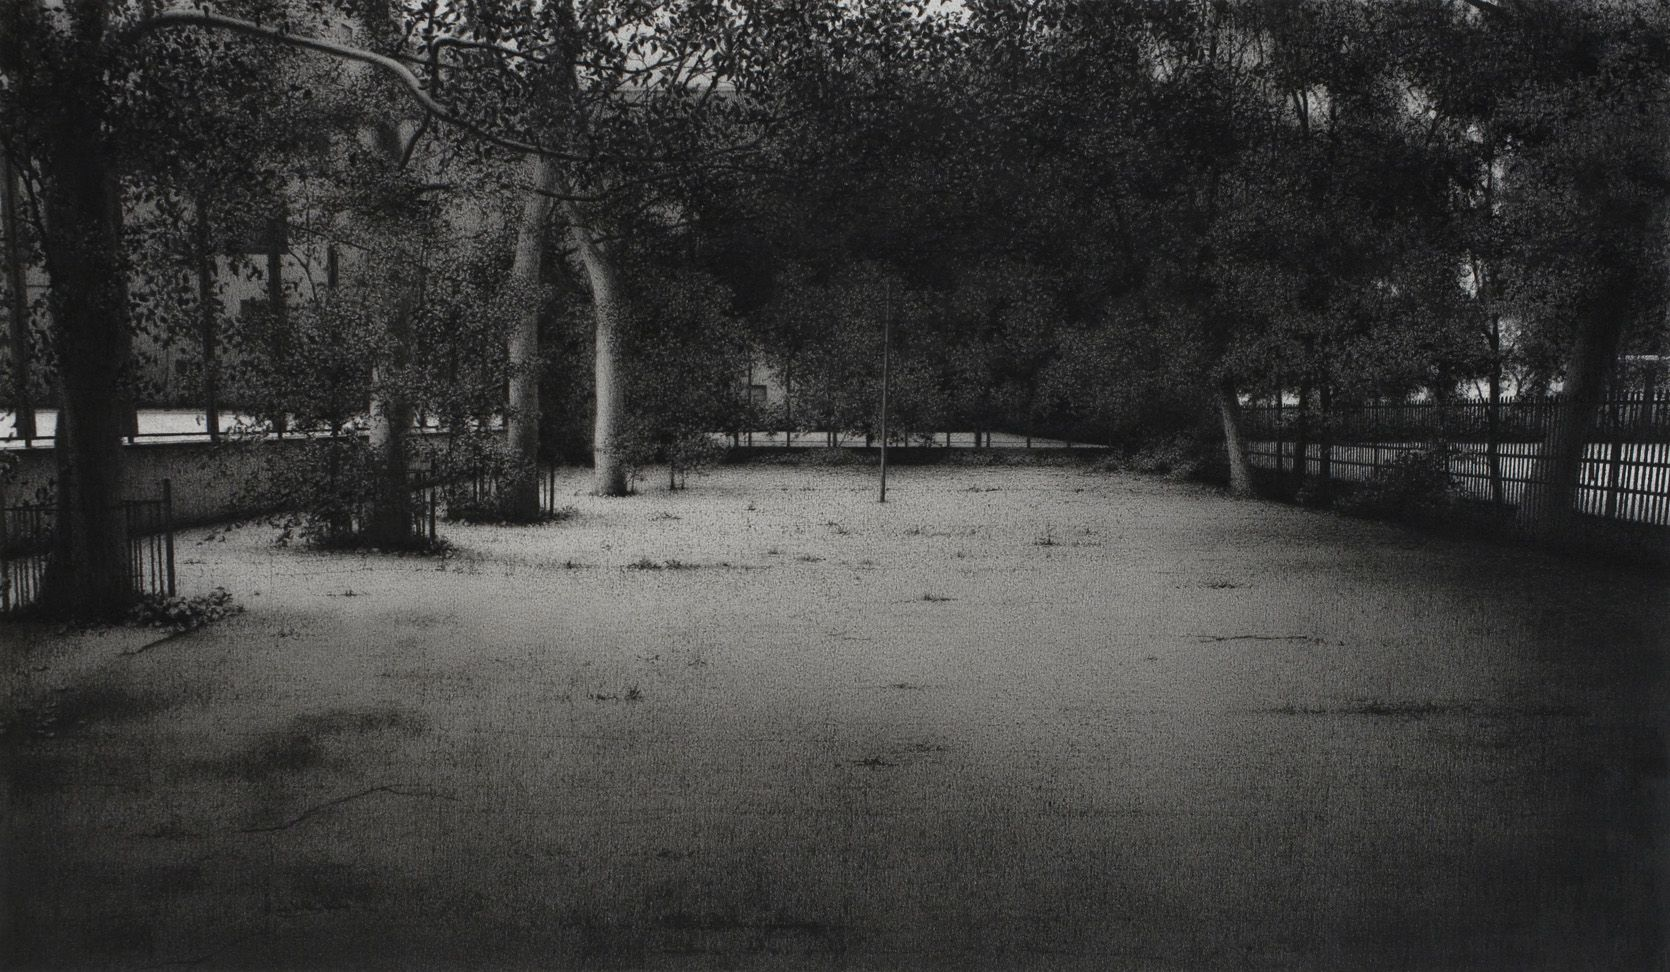 anthony mitri, Space in the Lower East Side, Manhattan, 2007, charcoal on paper, 15 x 25 3/4 inches